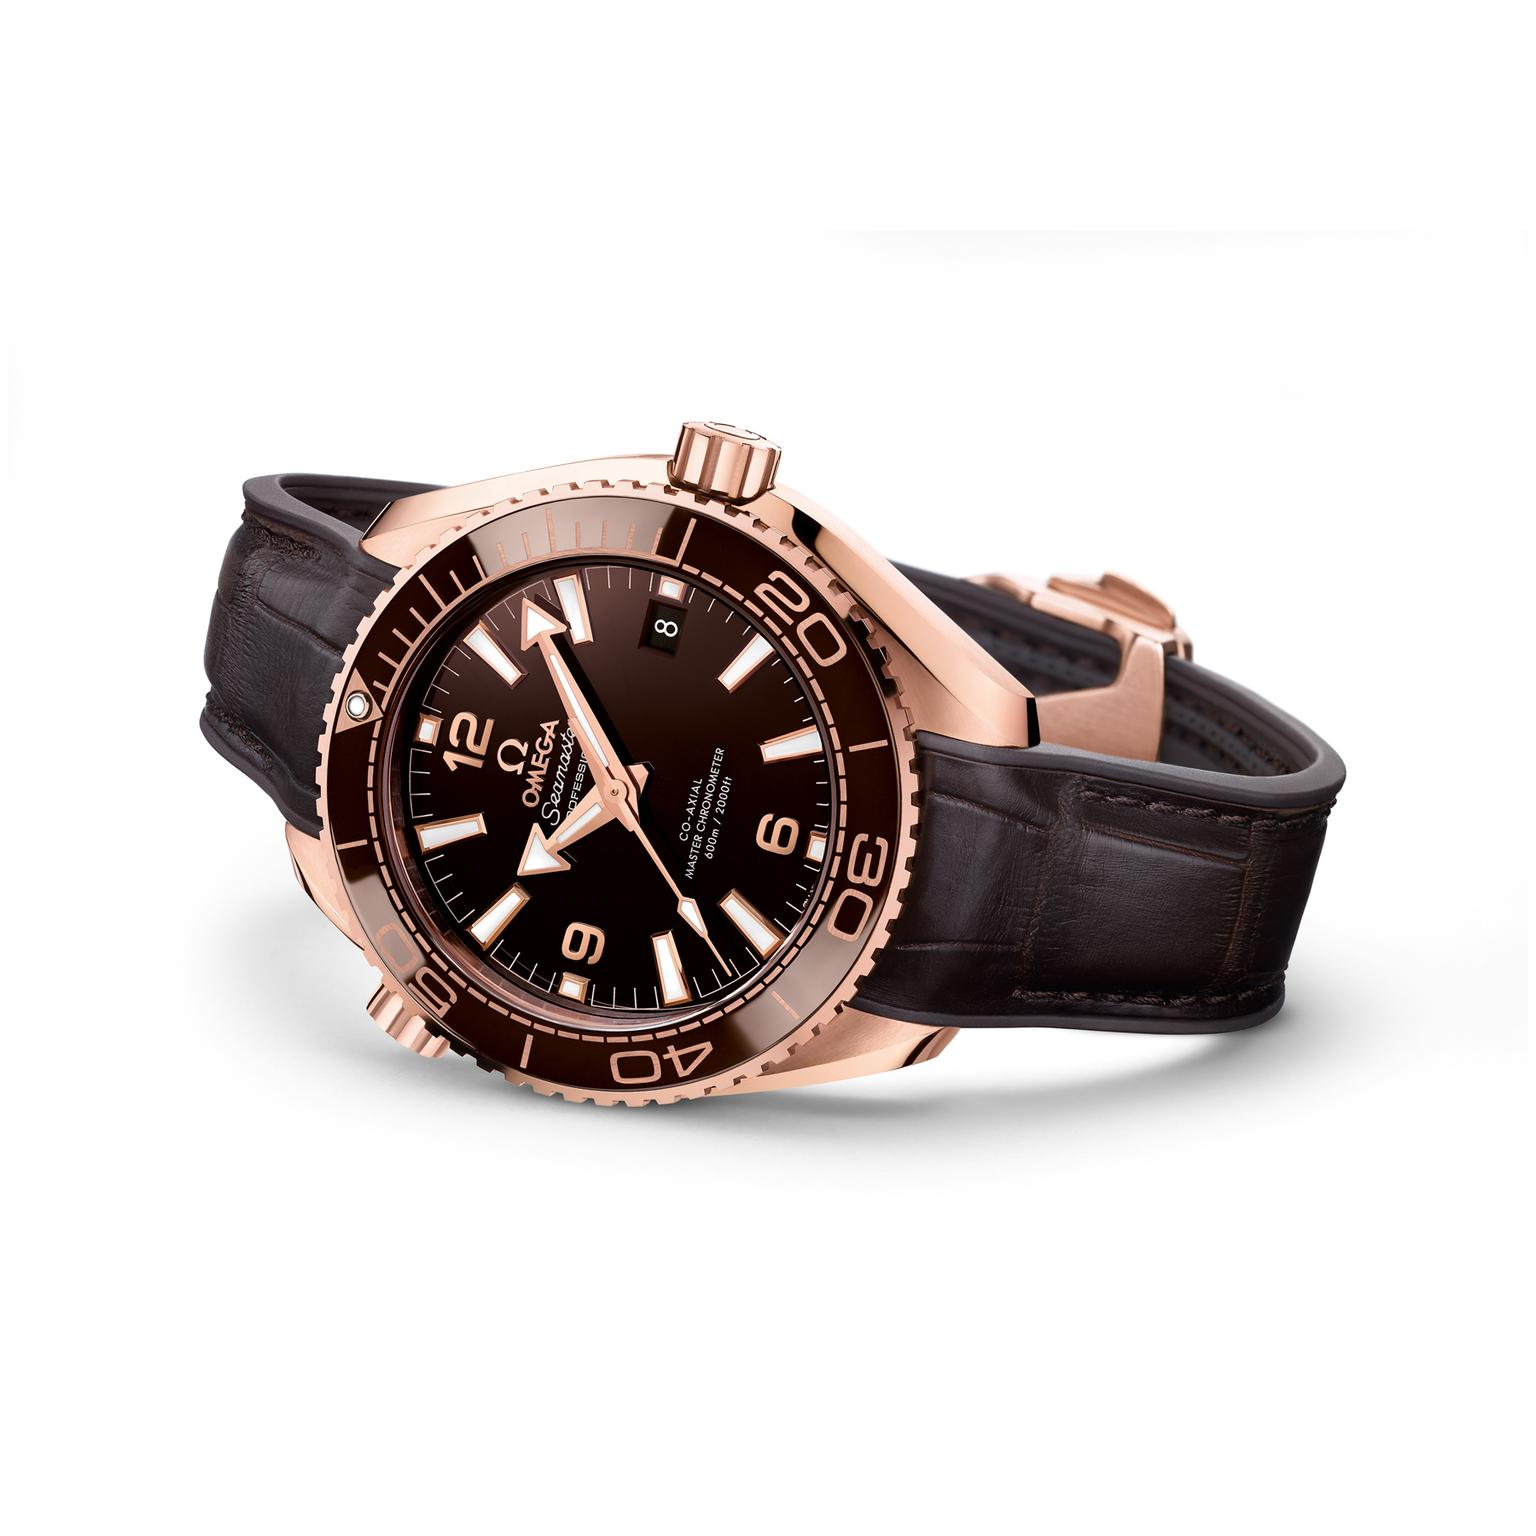 Omega Seamaster Planet Ocean watch in Sedna gold